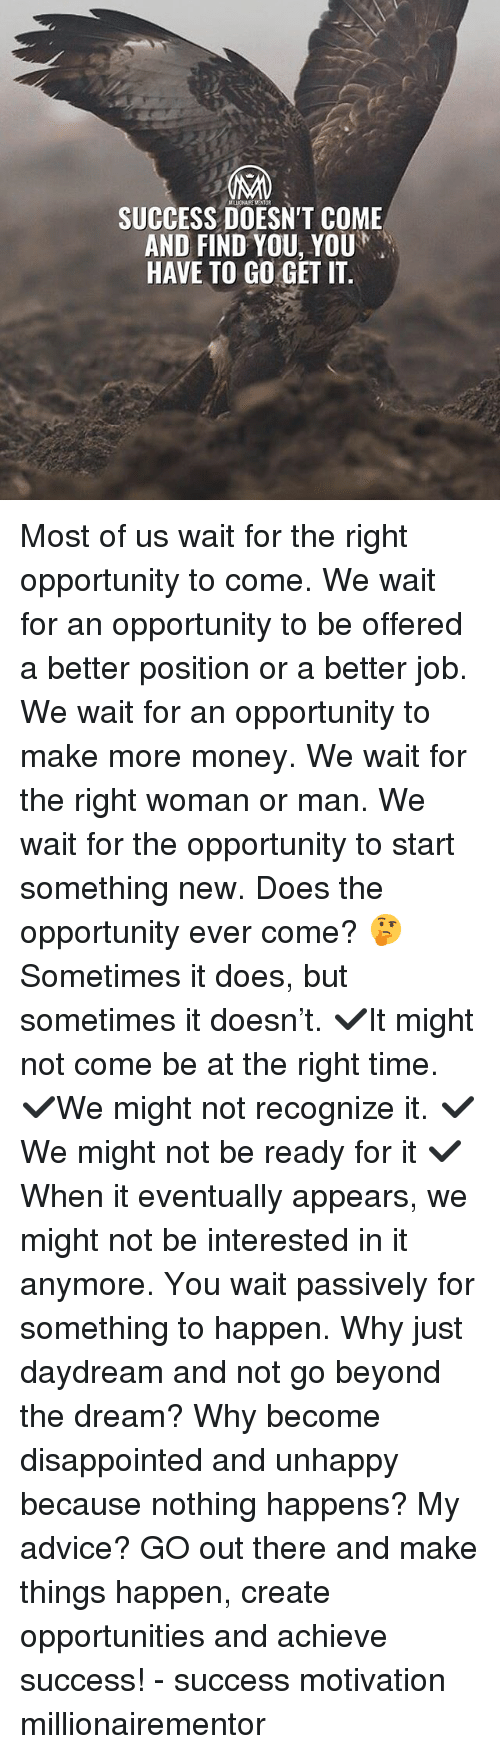 Advice, Disappointed, and Memes: SUCCESS DOESN'T COME  AND FIND YOU, YOU  HAVE TO GO GET IT. Most of us wait for the right opportunity to come. We wait for an opportunity to be offered a better position or a better job. We wait for an opportunity to make more money. We wait for the right woman or man. We wait for the opportunity to start something new. Does the opportunity ever come? 🤔Sometimes it does, but sometimes it doesn't. ✔️It might not come be at the right time. ✔️We might not recognize it. ✔️We might not be ready for it ✔️When it eventually appears, we might not be interested in it anymore. You wait passively for something to happen. Why just daydream and not go beyond the dream? Why become disappointed and unhappy because nothing happens? My advice? GO out there and make things happen, create opportunities and achieve success! - success motivation millionairementor